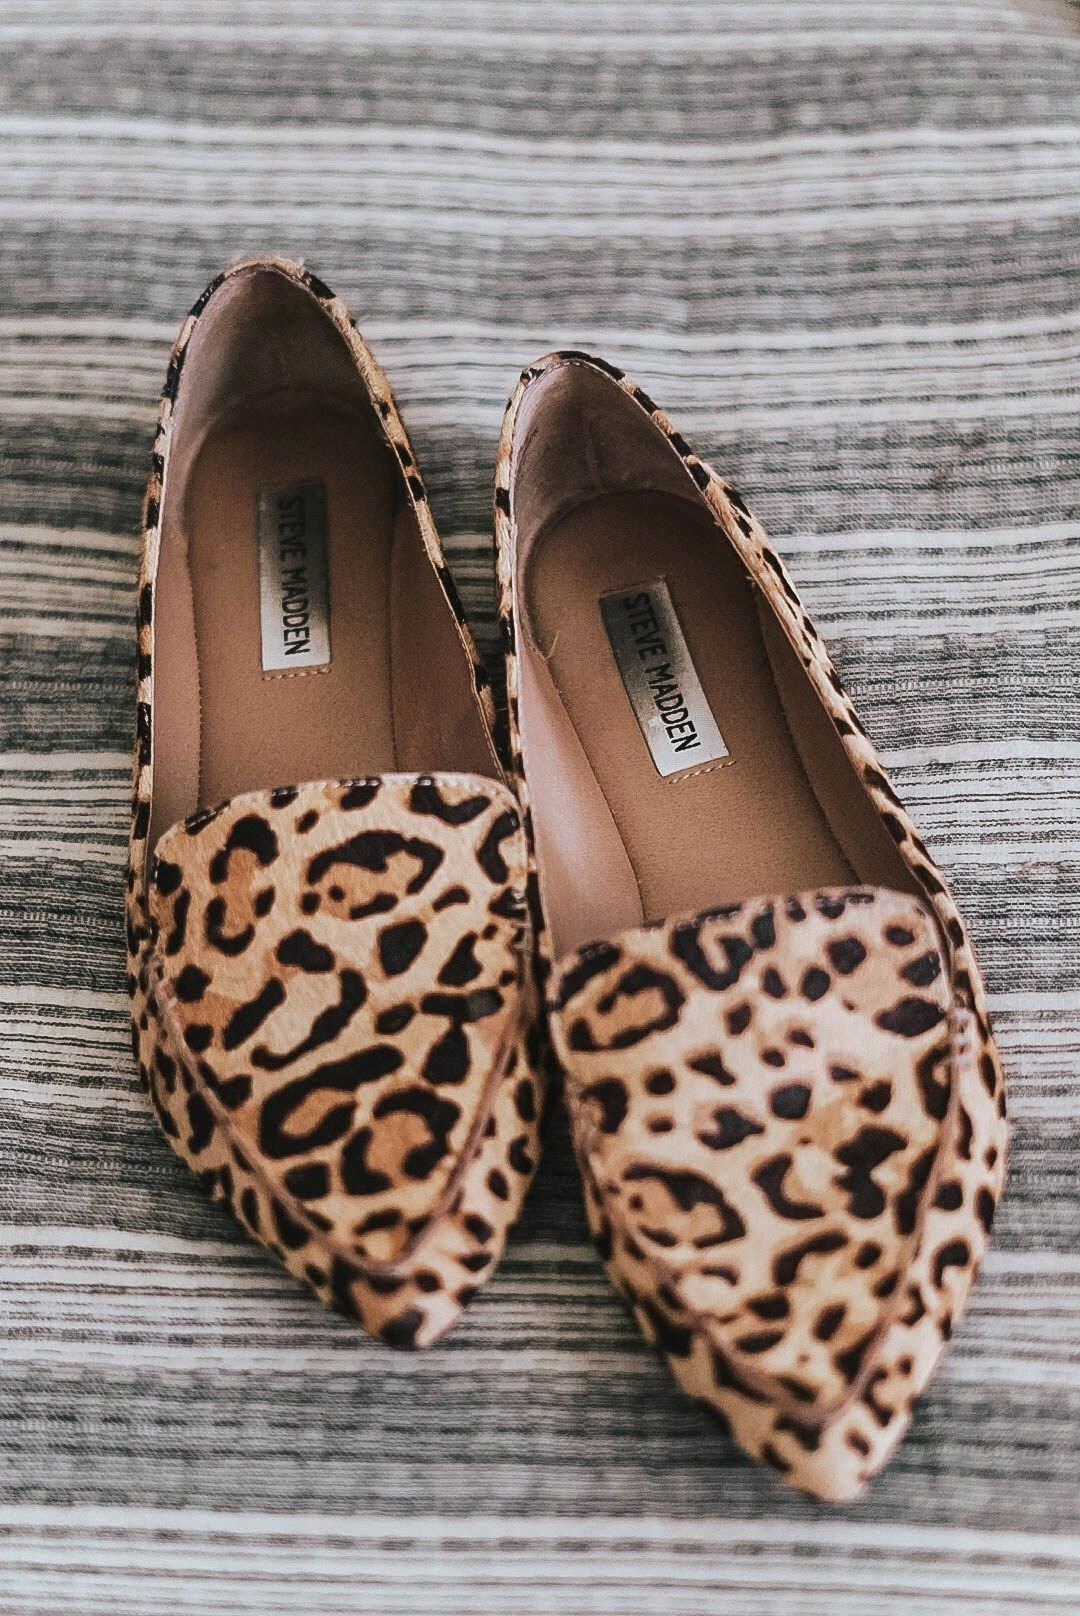 6 Shoes to Transition into Fall | Fall shoes, Fashion, Shoes